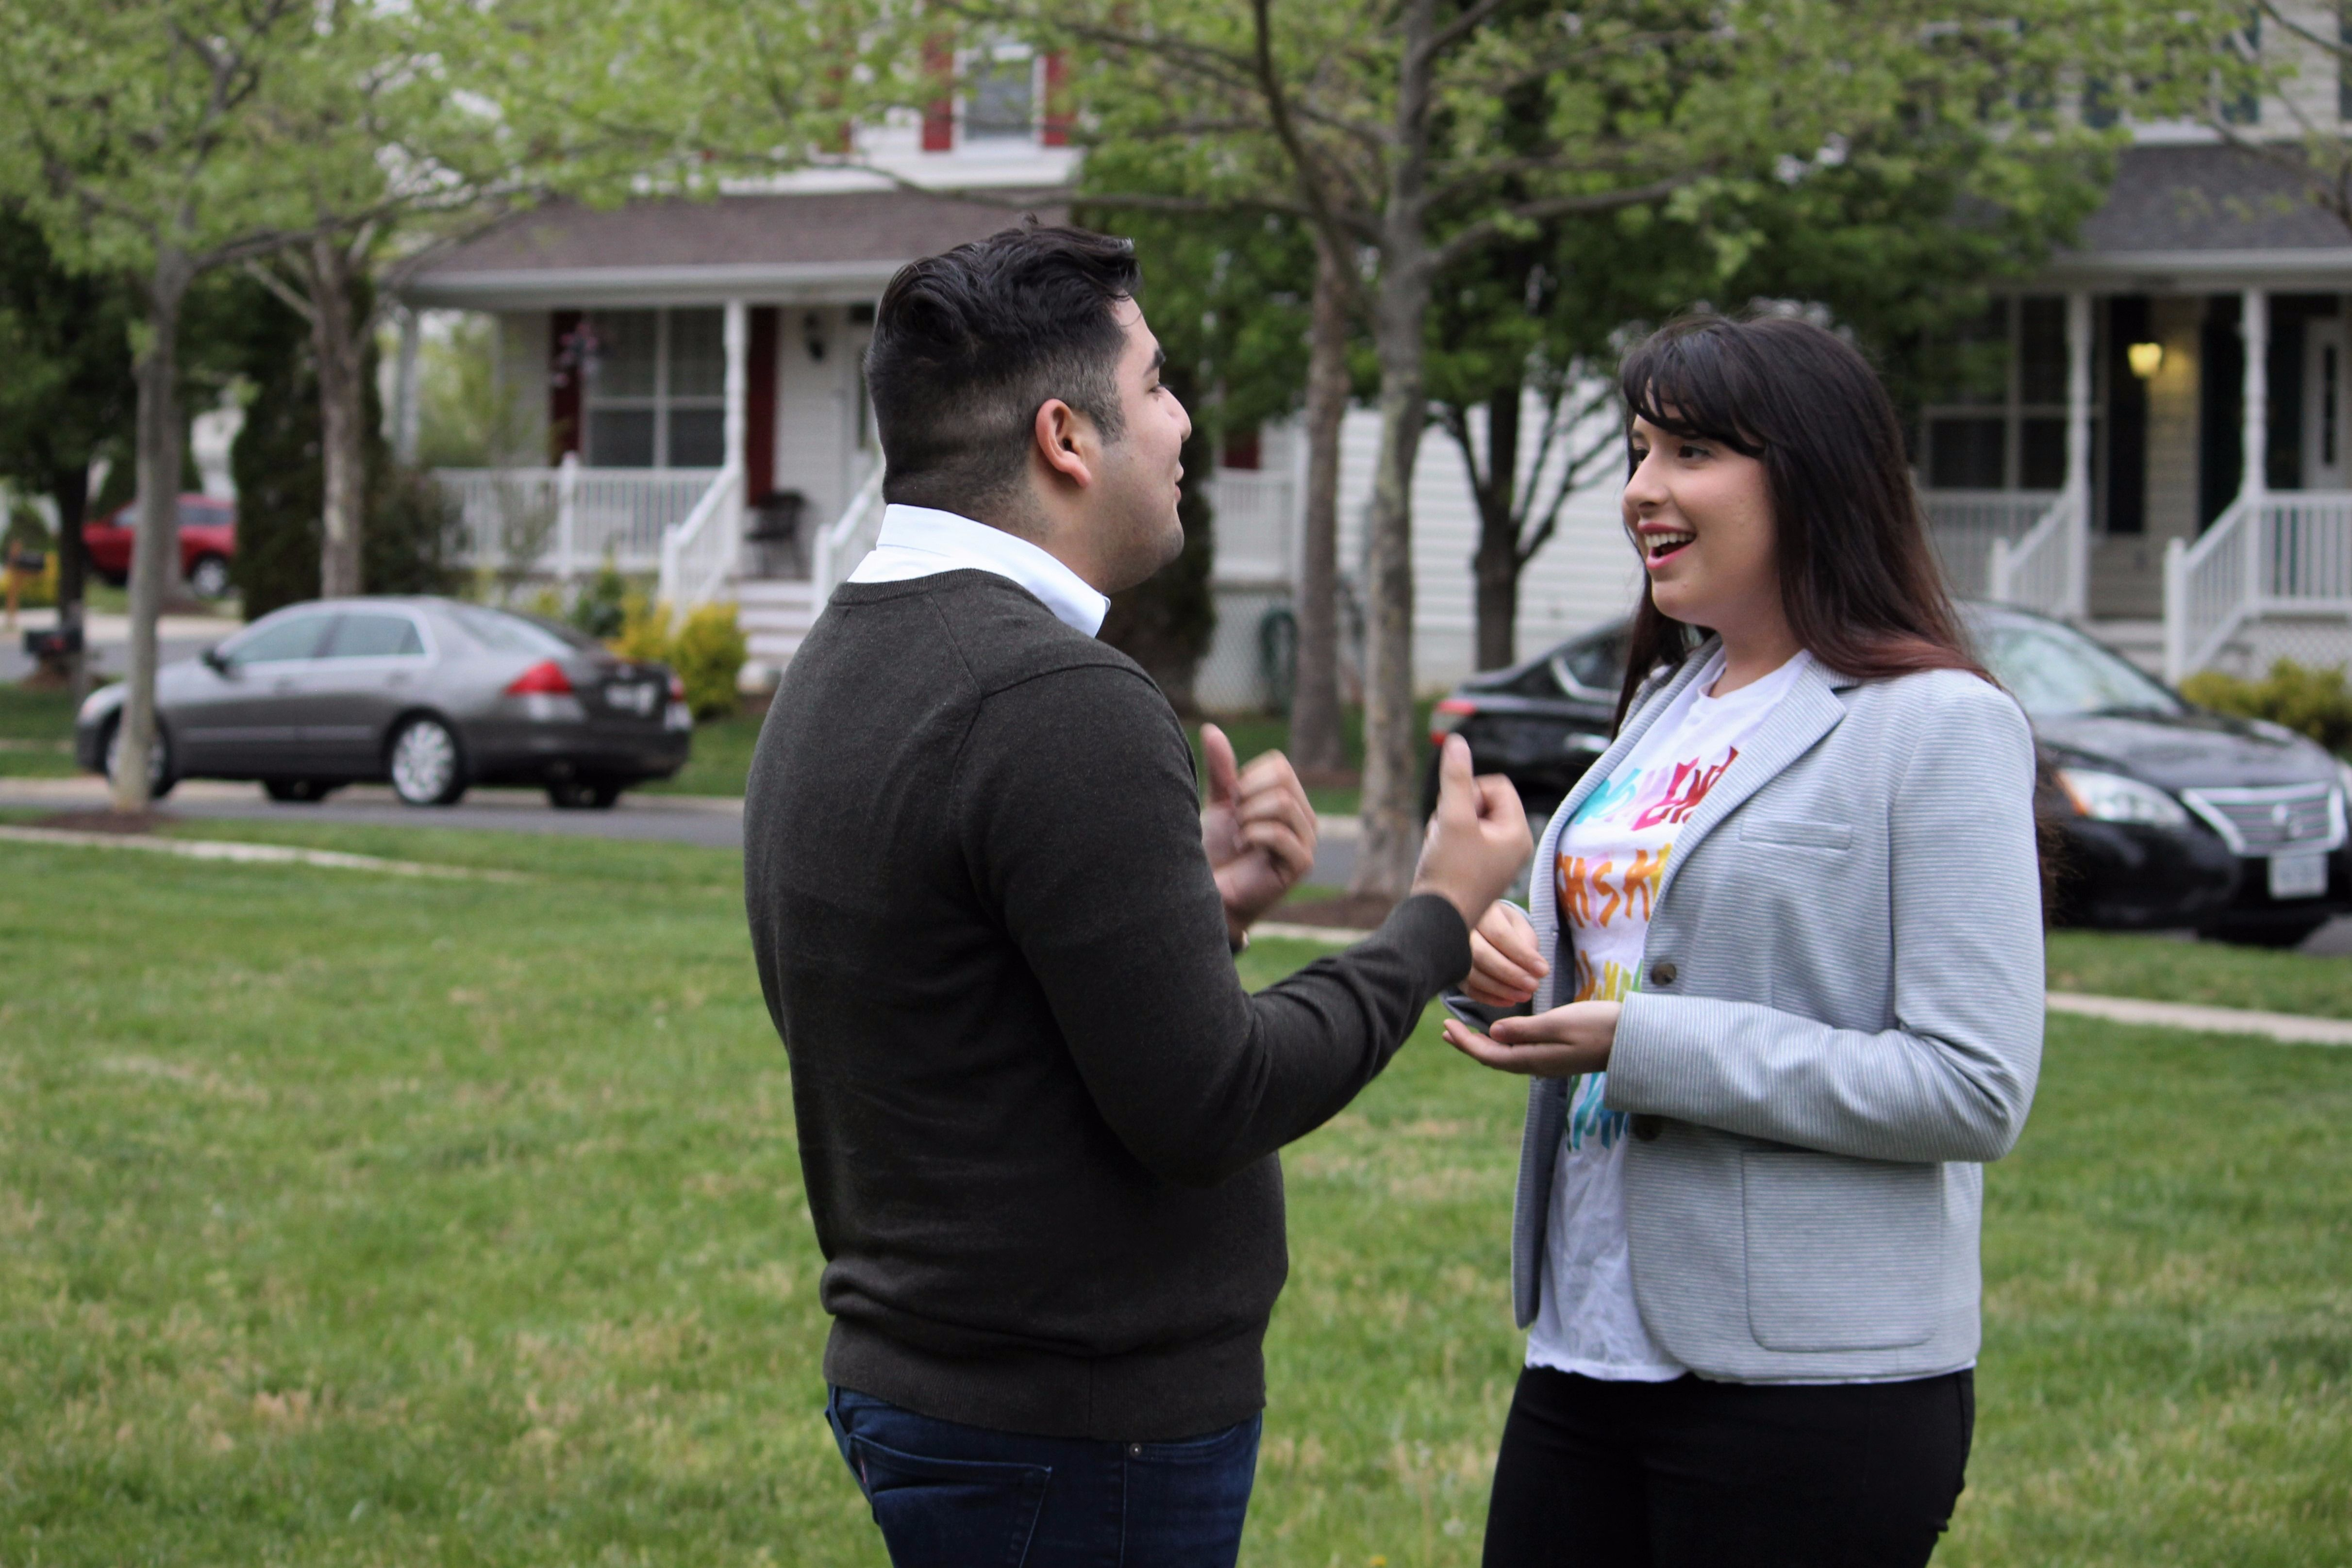 Hannah Risheq speaking to a voter in Virginia